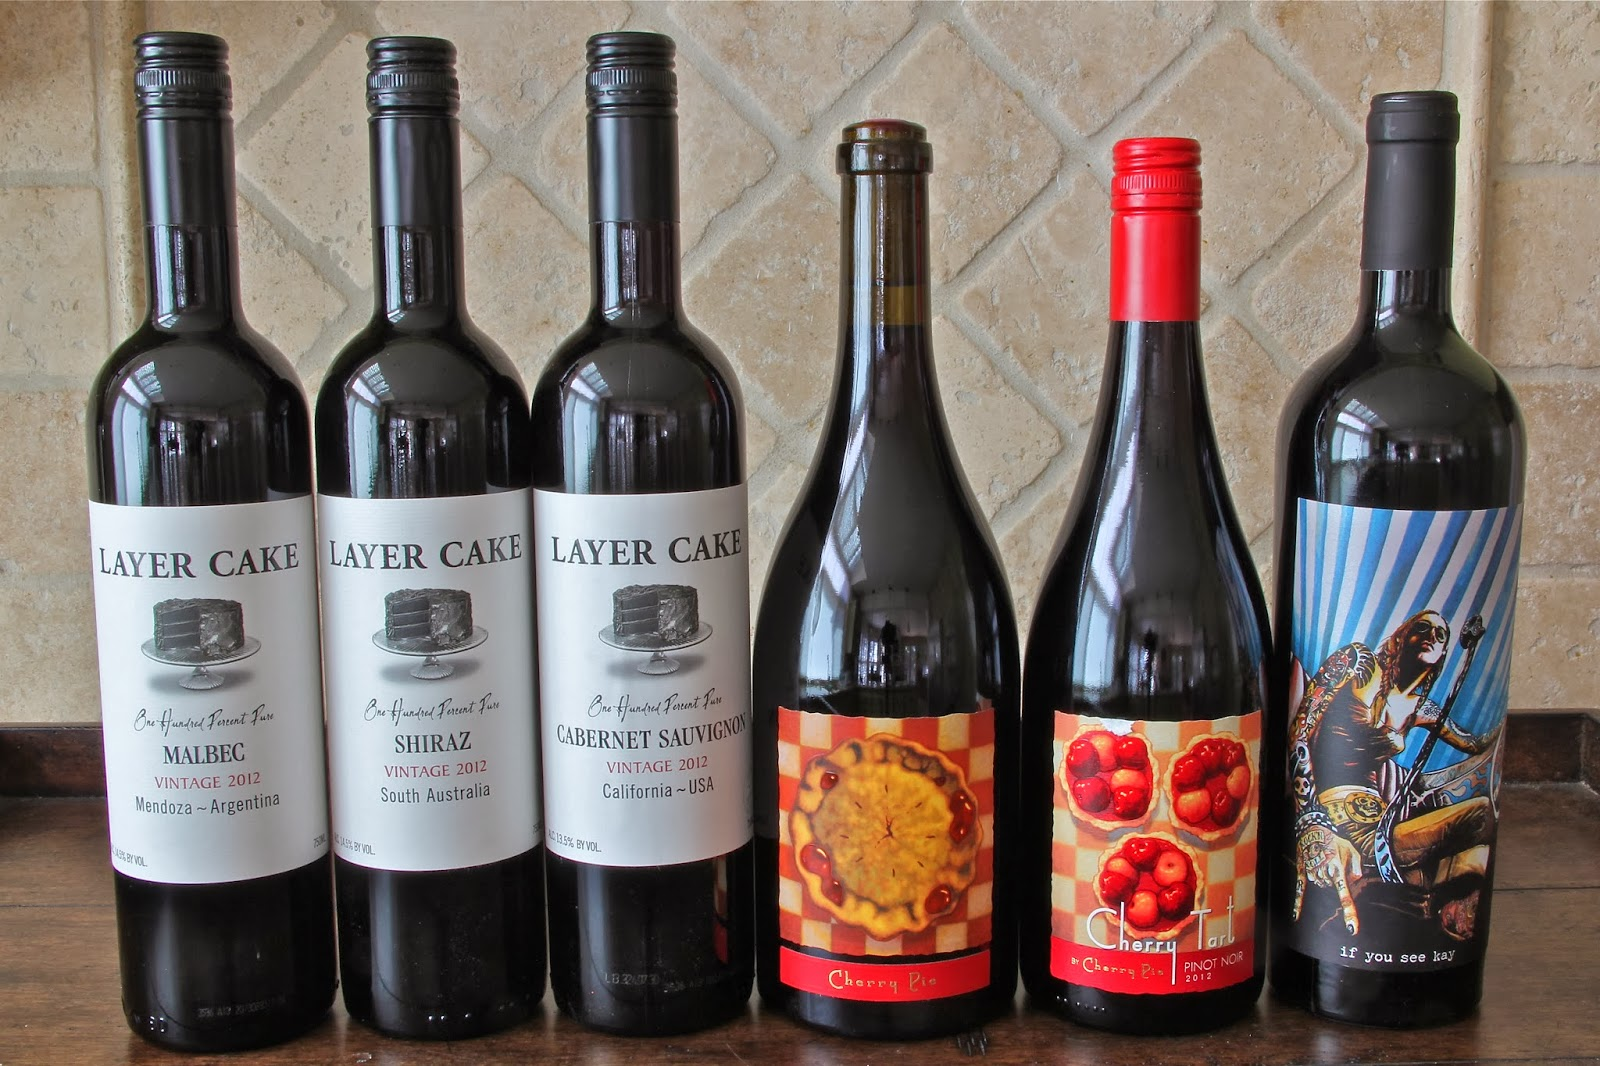 There Are All Sorts Of Cake And Pie Themed Wines On The Market These Days Like Those From Birthday Vineyards Cakebread Cellars